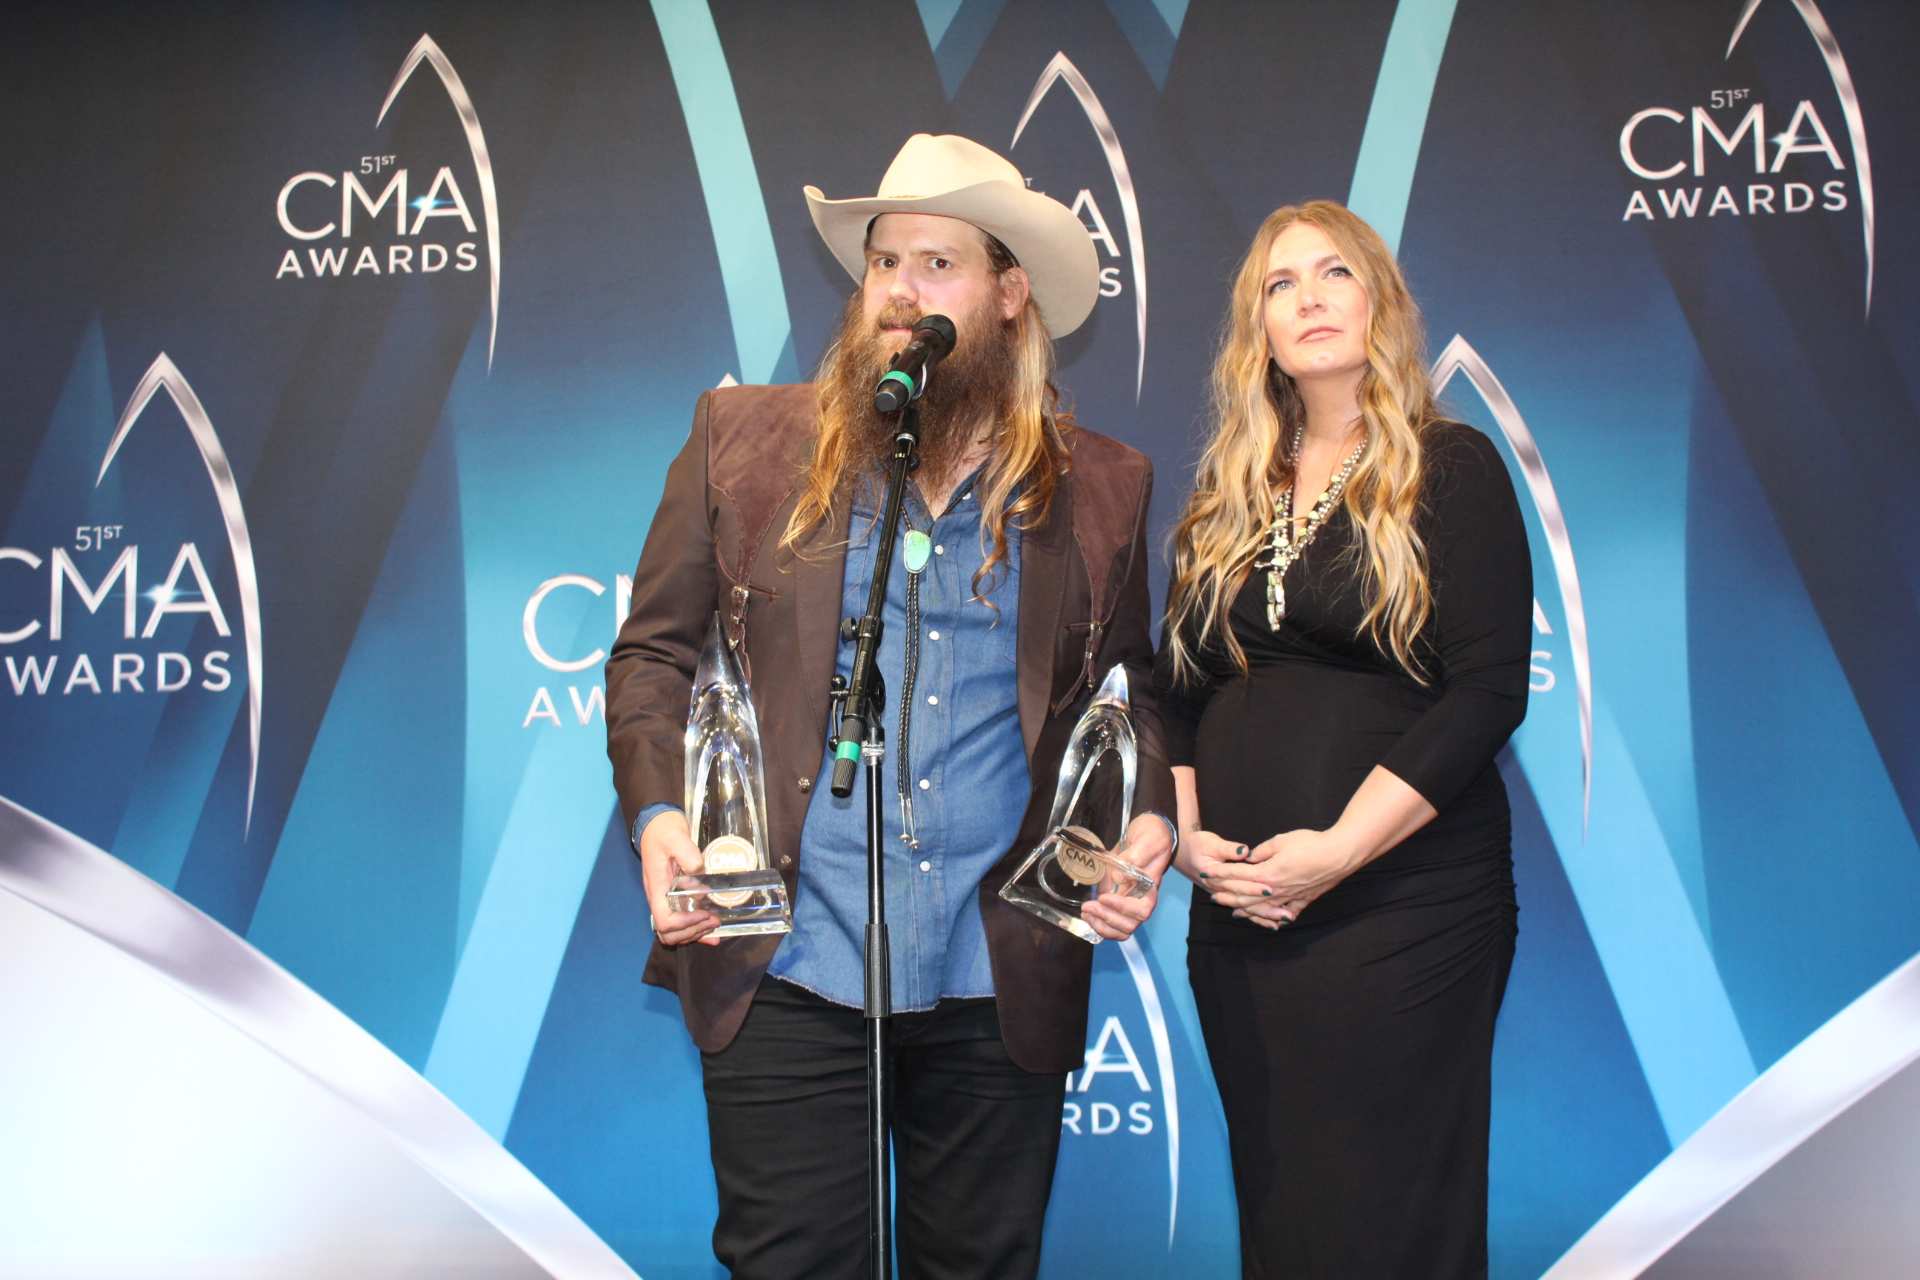 51st Annual CMA Awards – Nominees & Winners! - Country 106.7